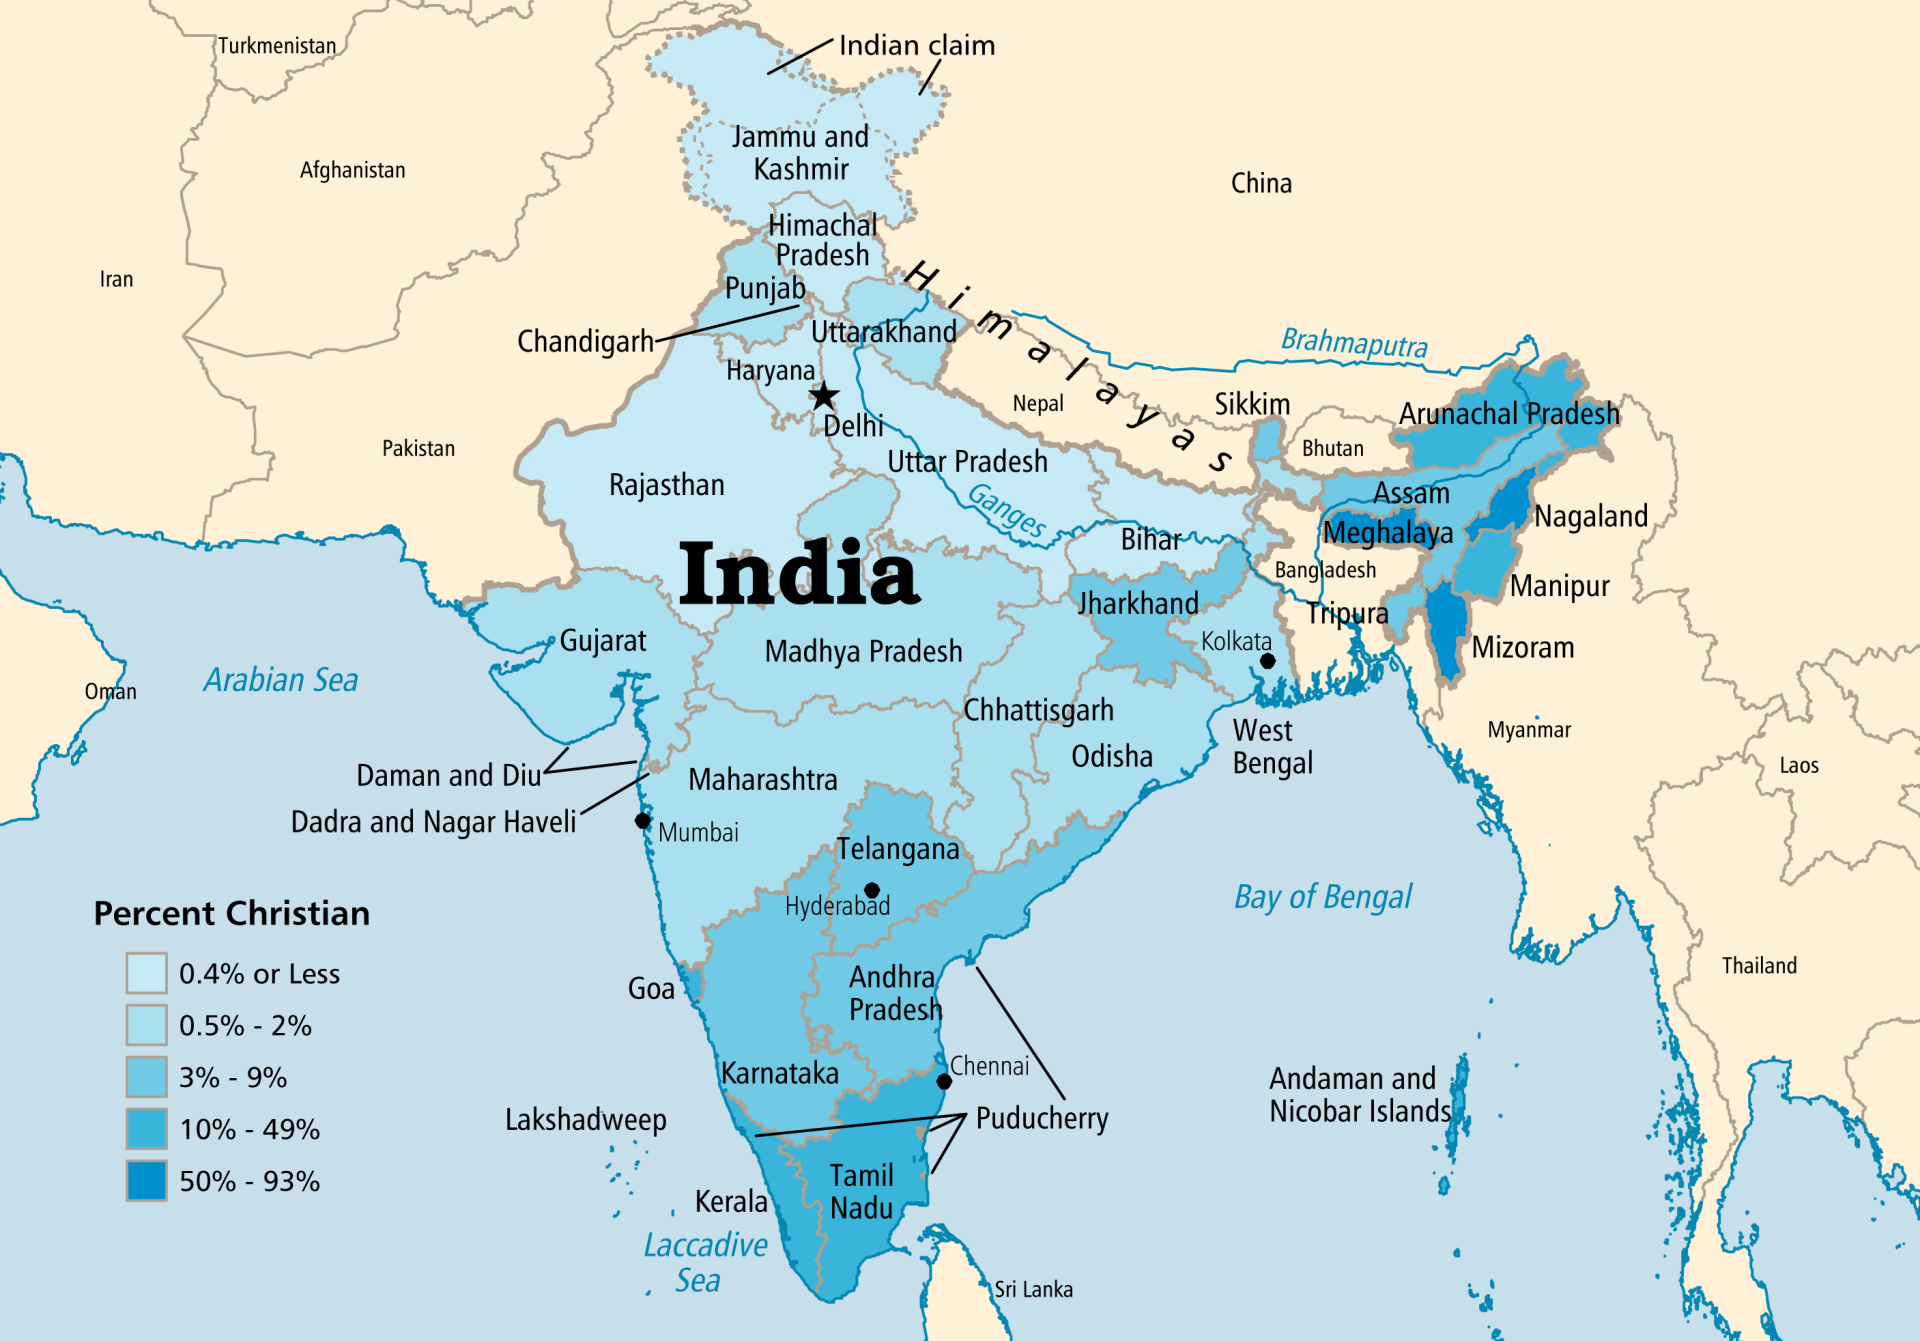 Detailed Map for India